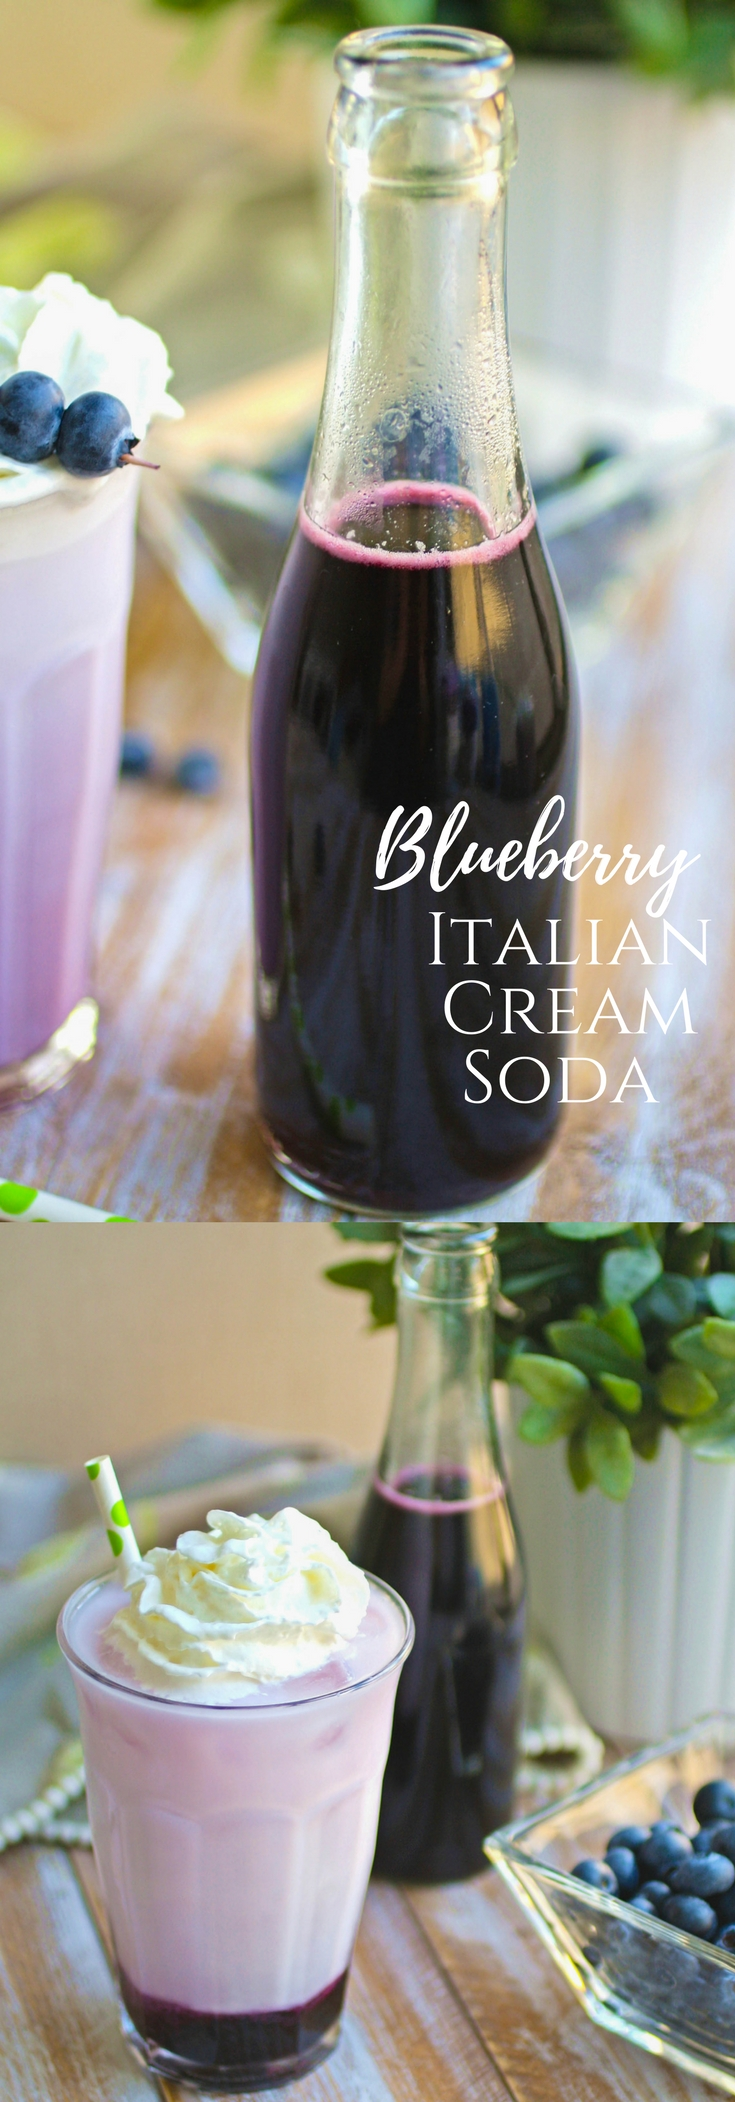 Blueberry Italian Cream Soda drinks are fun to indulge in. You'll love these Blueberry Italian Cream Soda drinks you can make at home.